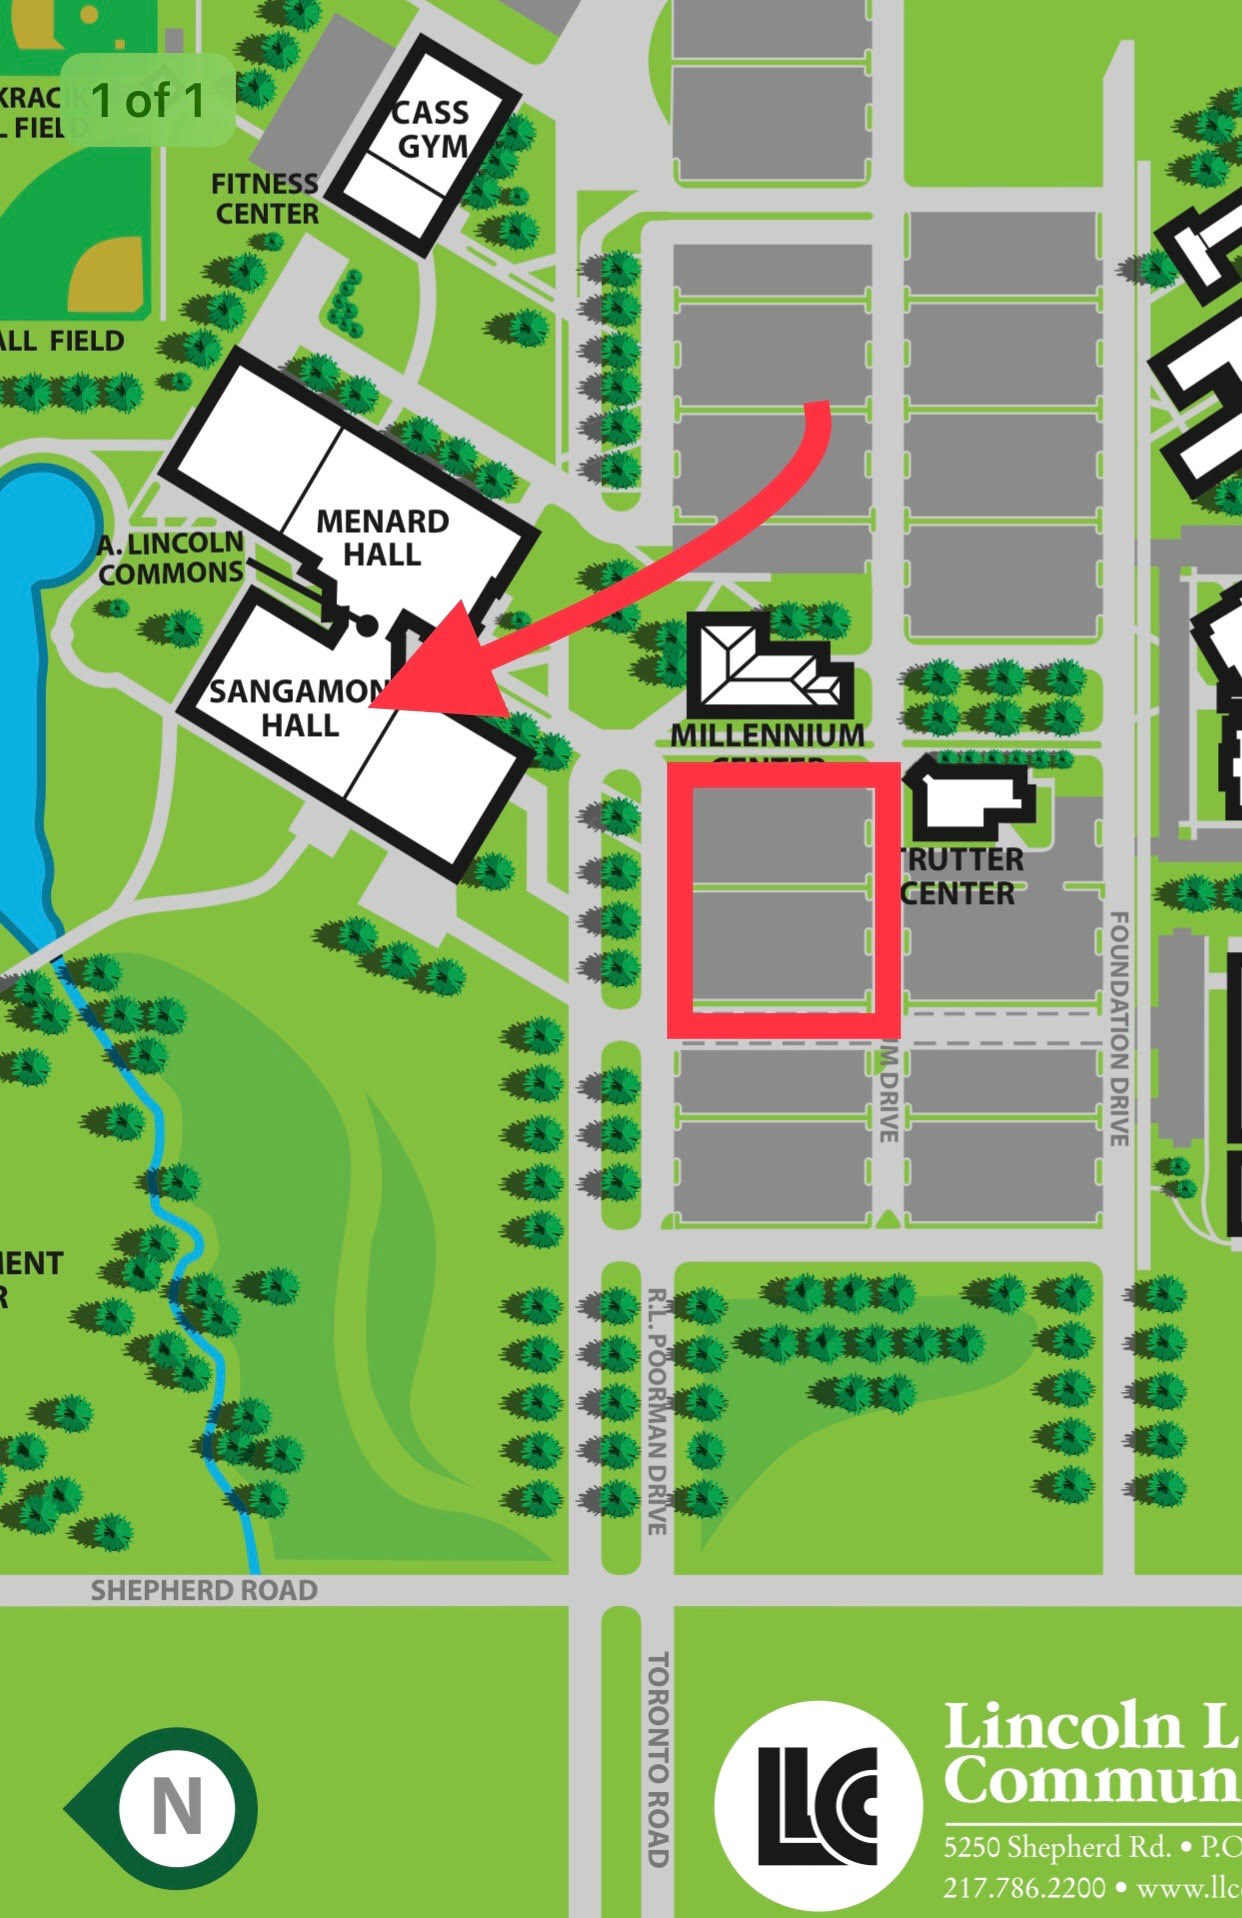 LLCC Library Map.jpg